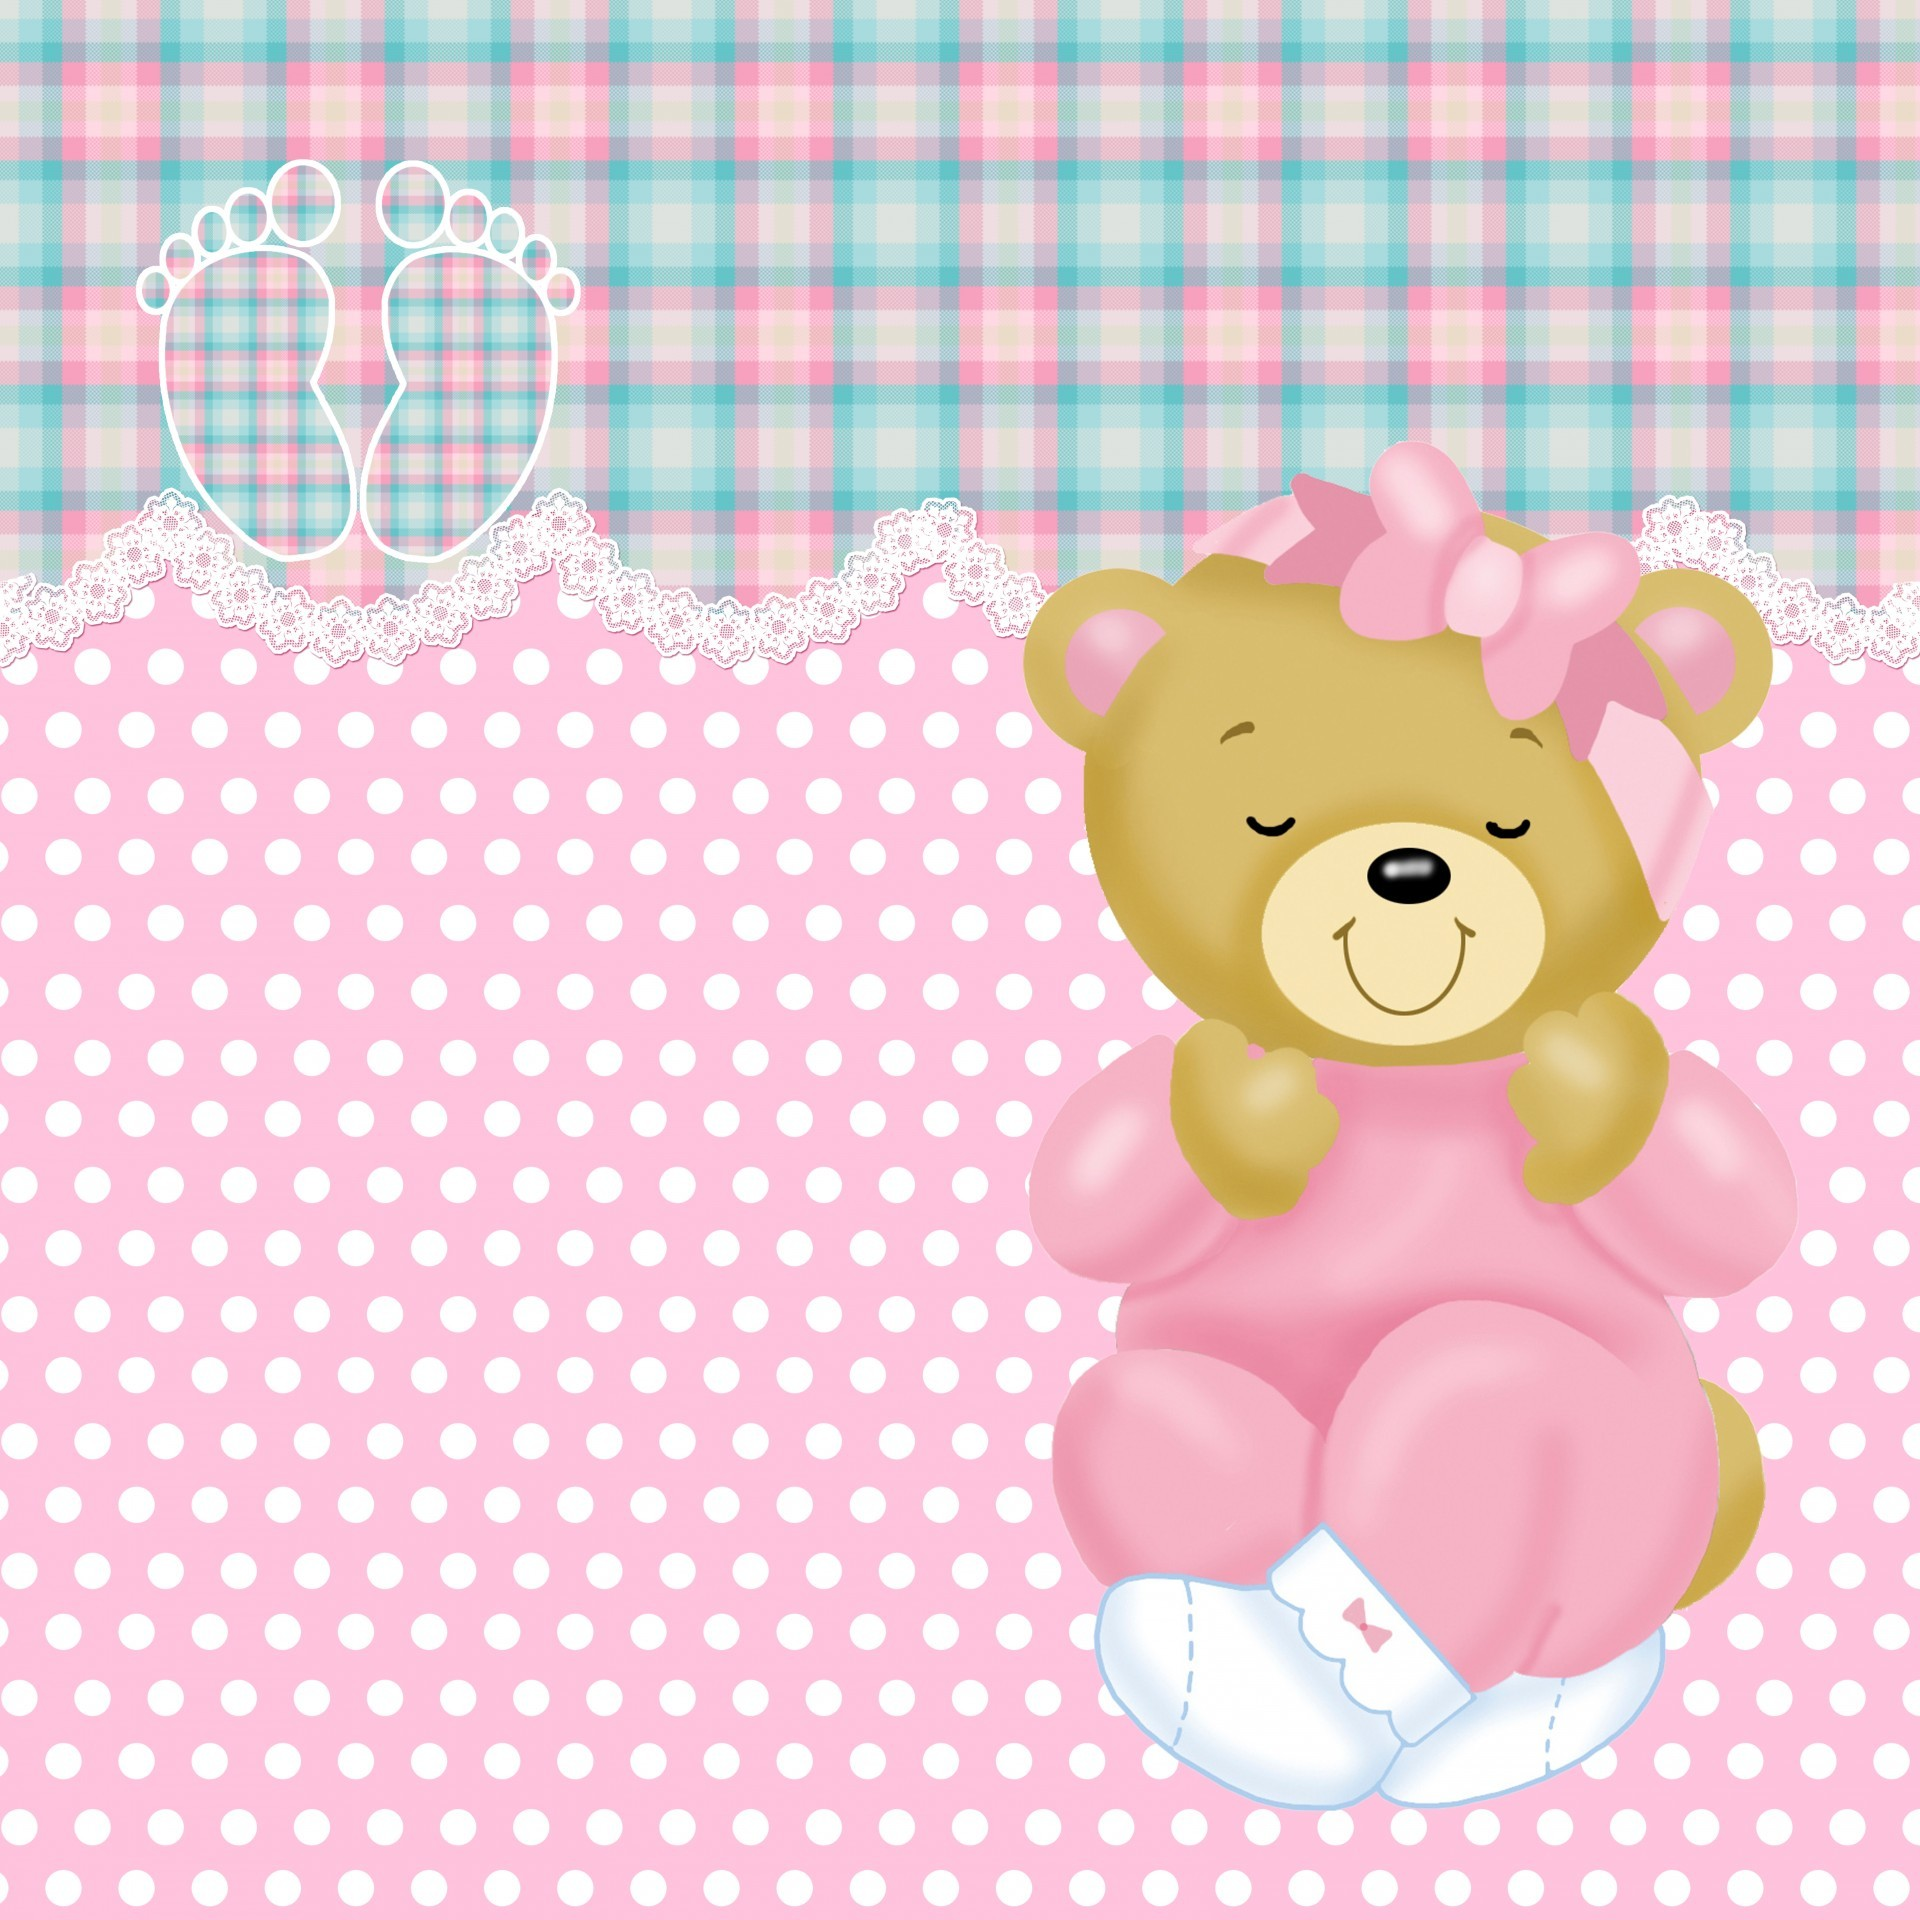 New Baby Backgrounds (29+ images).